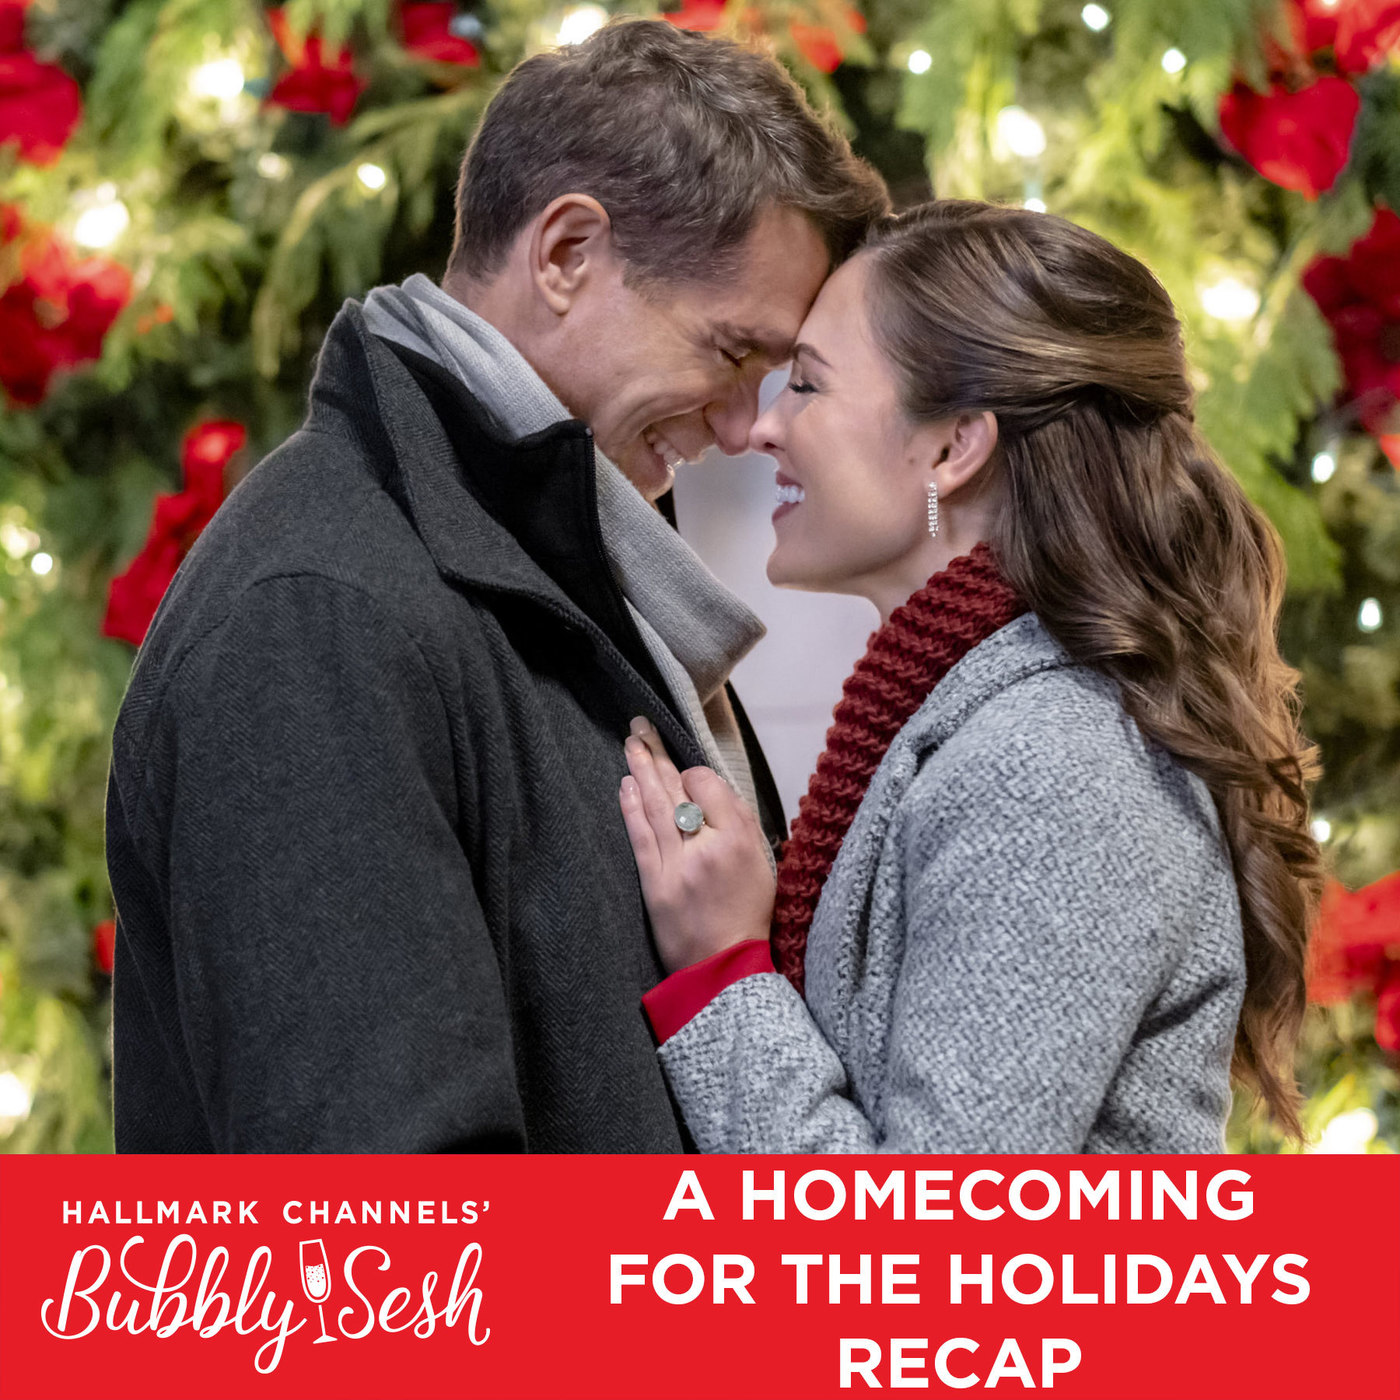 A Homecoming for the Holidays Recap